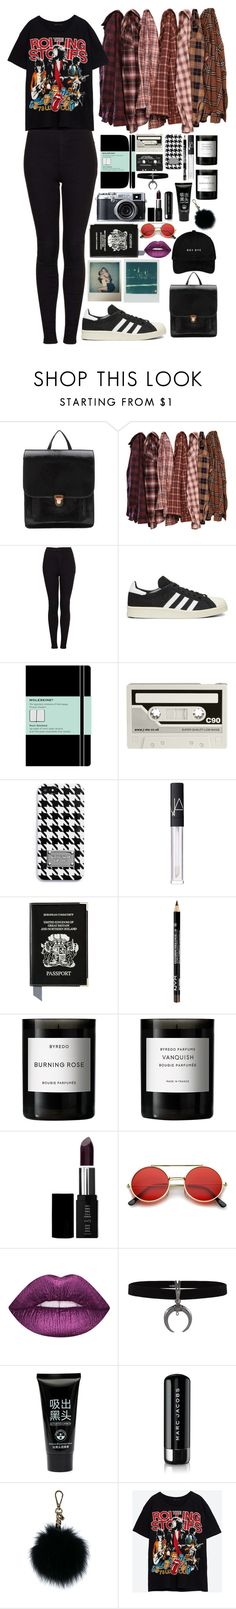 """Untitled #593"" by jojomix ❤ liked on Polyvore featuring Hstyle, Topshop, adidas, Moleskine, CASSETTE, MICHAEL Michael Kors, NARS Cosmetics, Aspinal of London, Byredo and Lord & Berry"